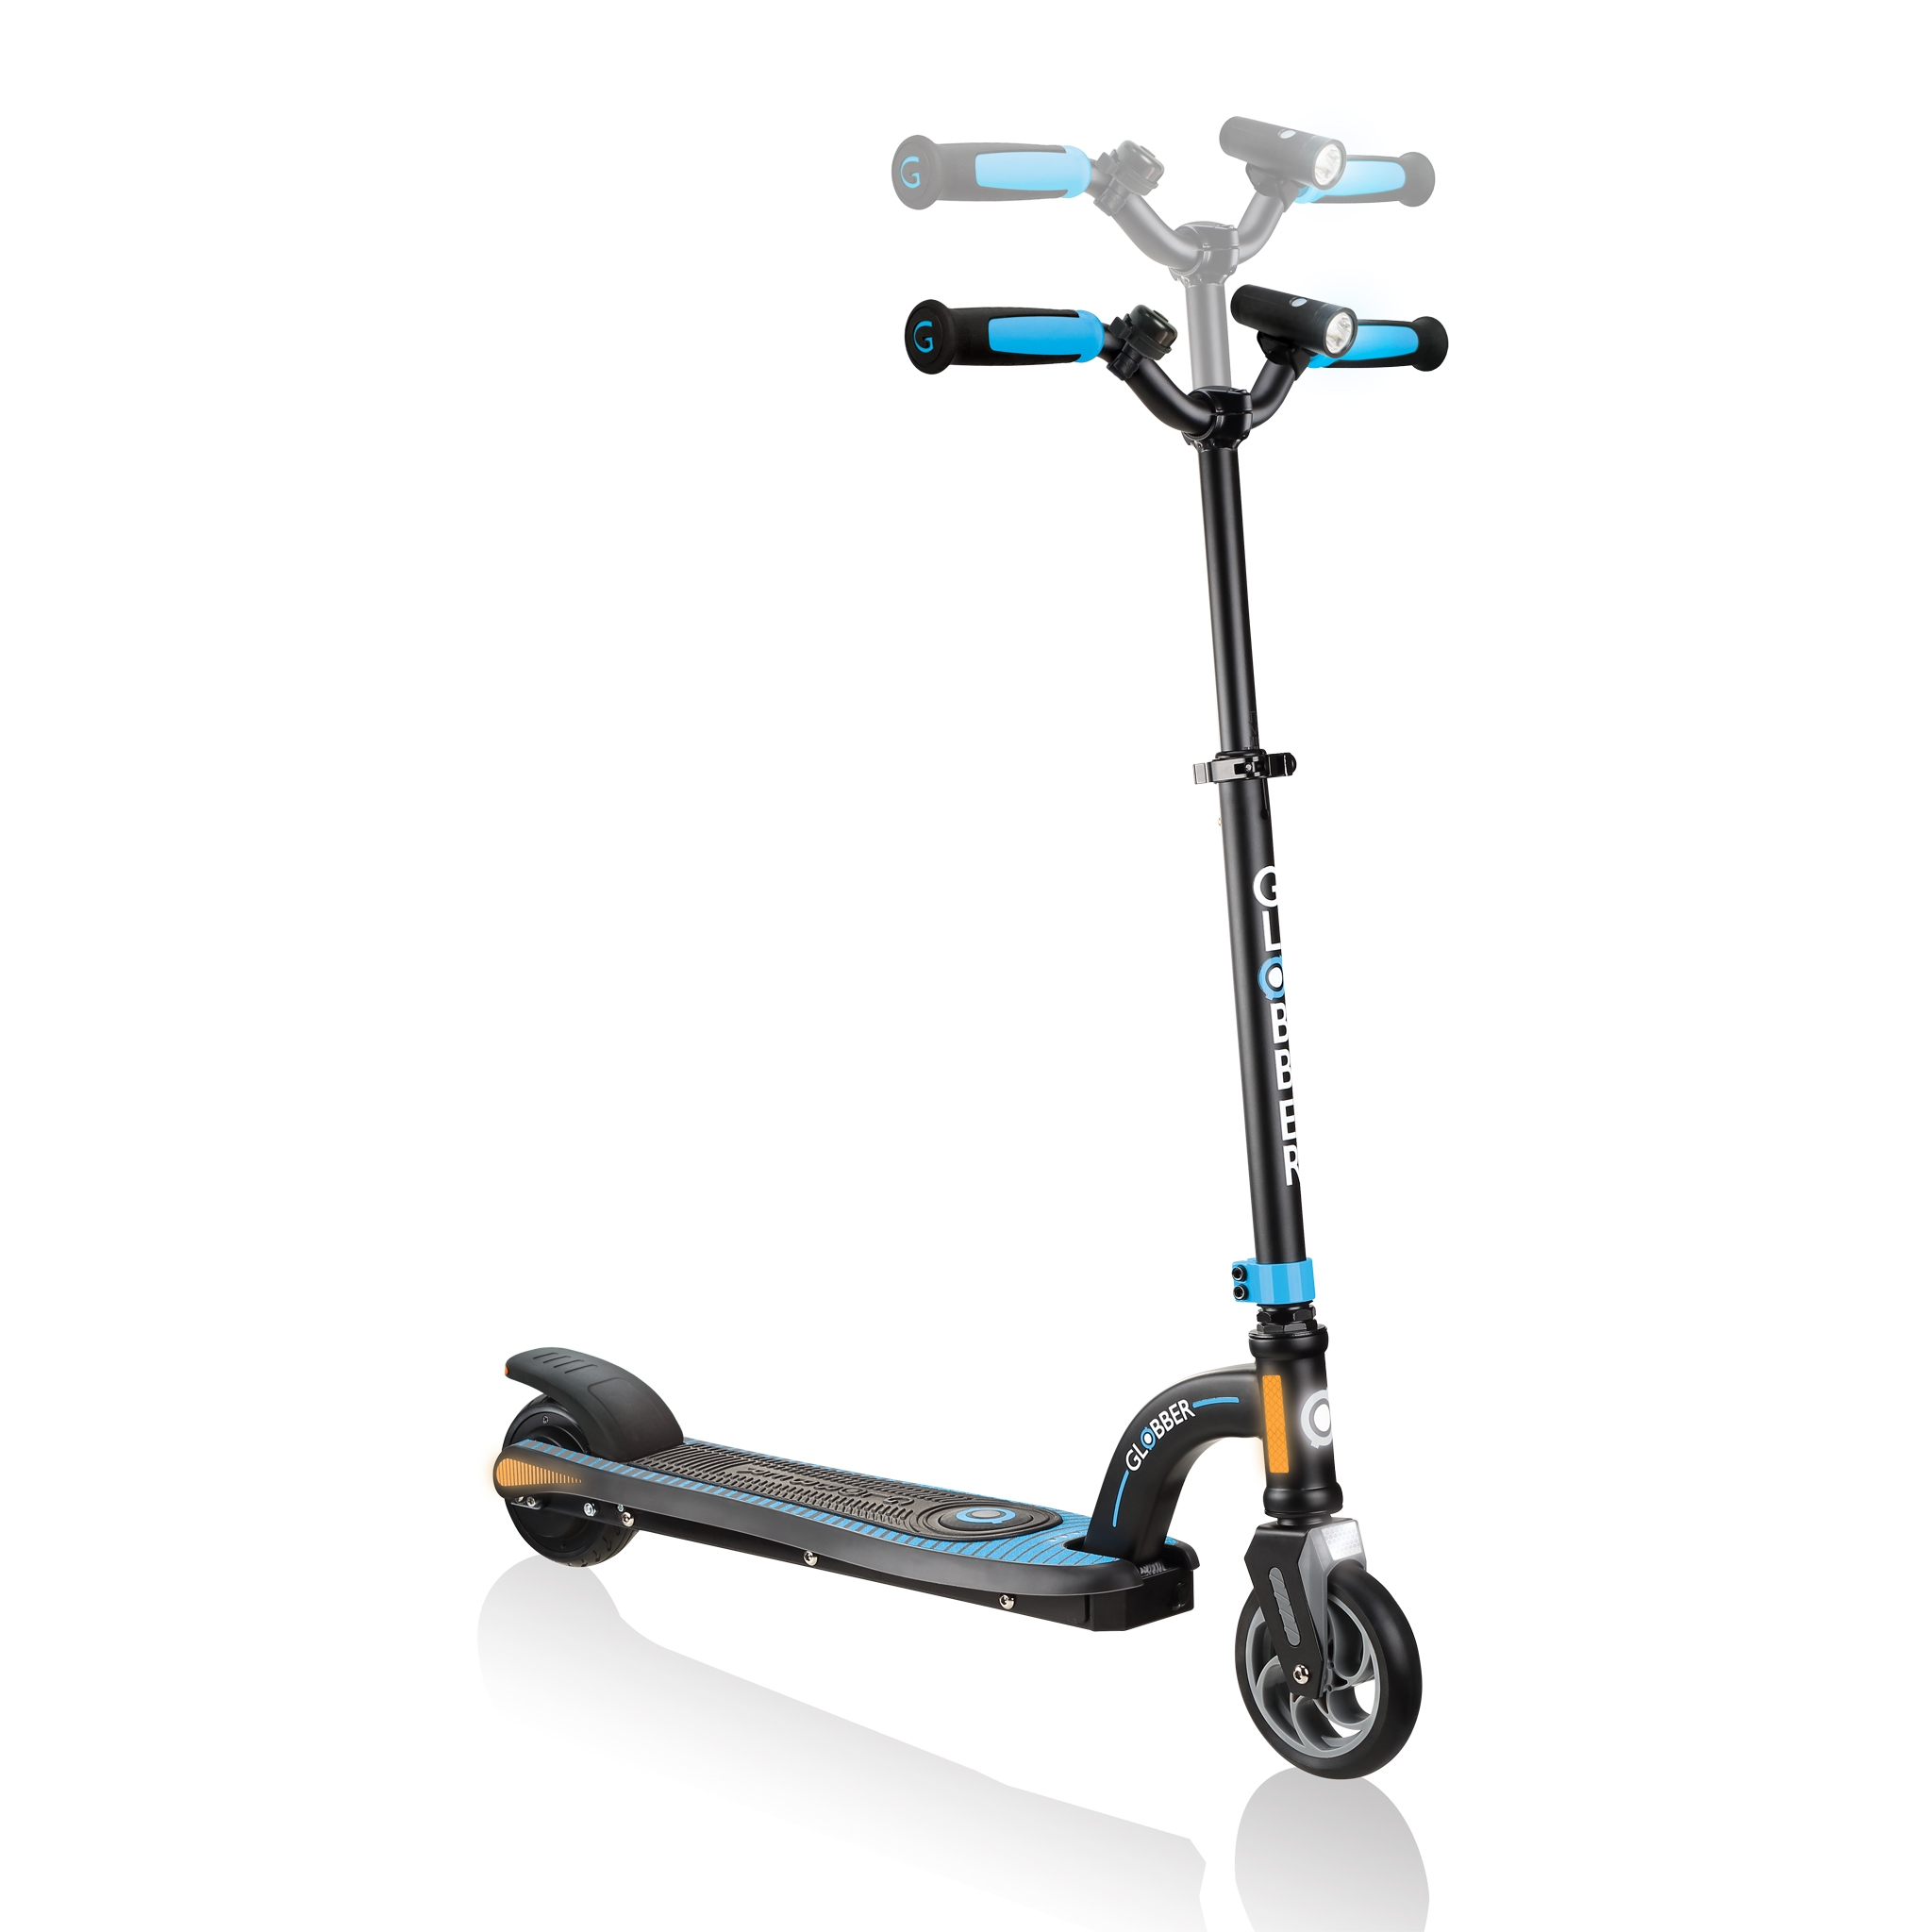 Globber-ONE-K-E-MOTION-10-best-electric-scooter-for-kids-aged-8-to-14-adjustable-e-scooter 1